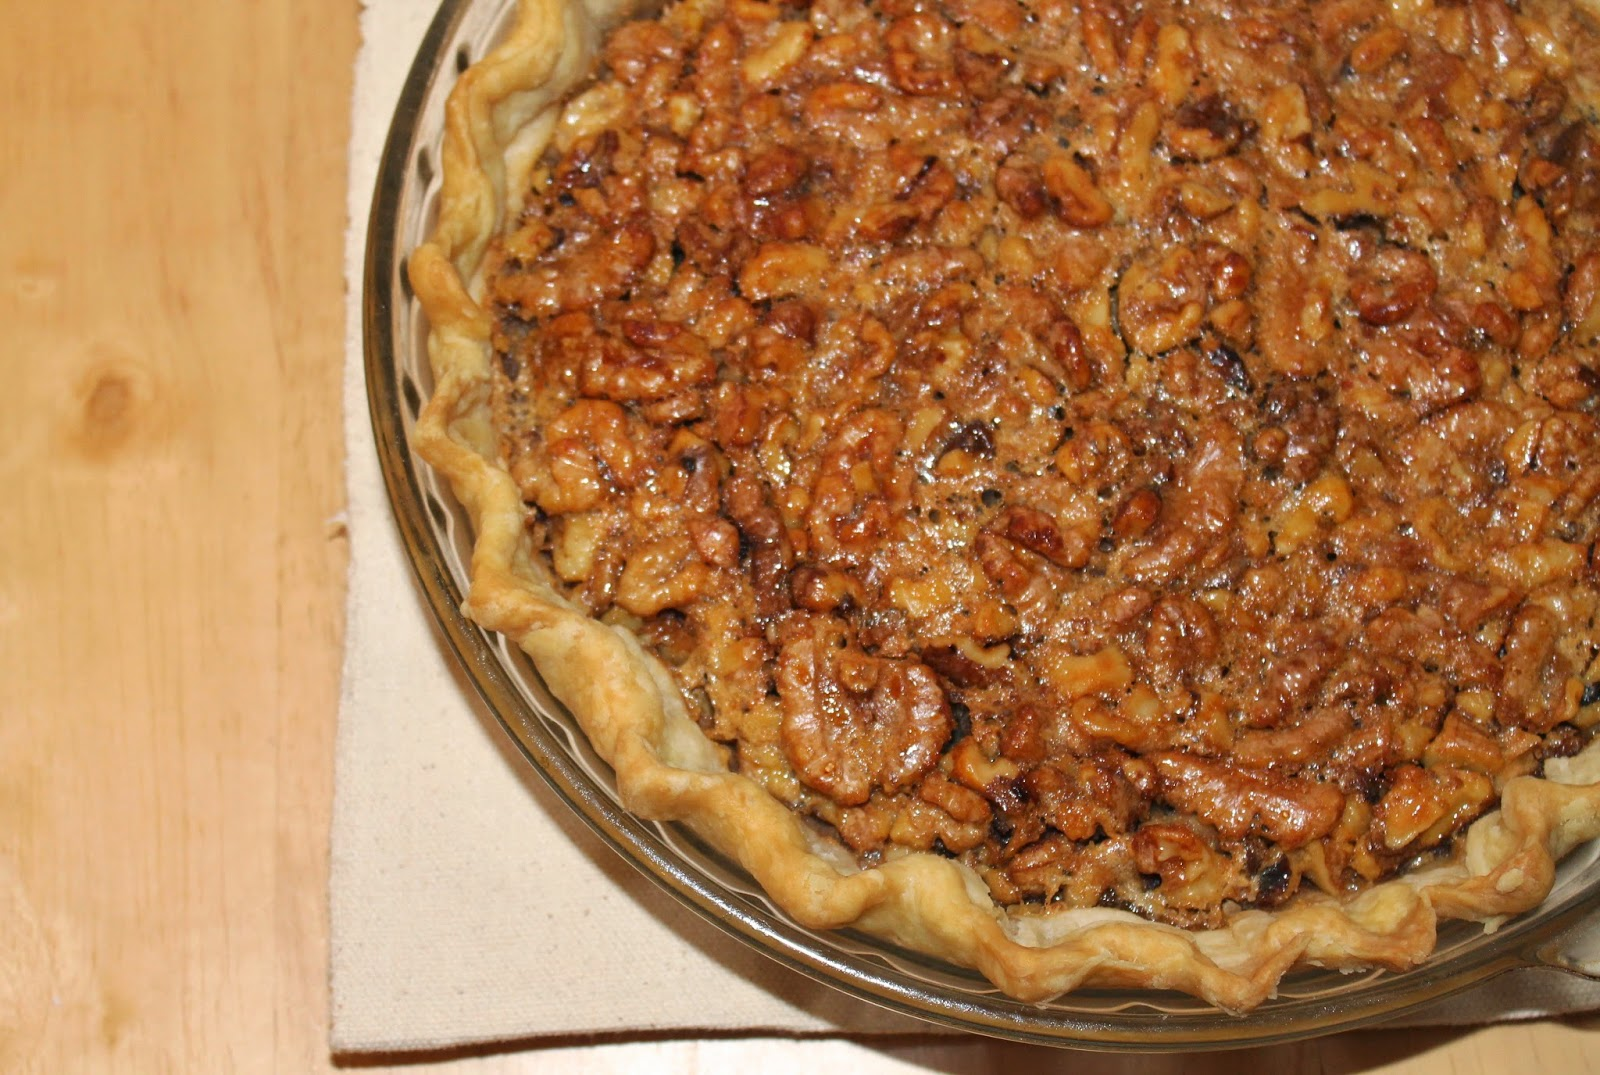 Savory Moments: Honey walnut pie